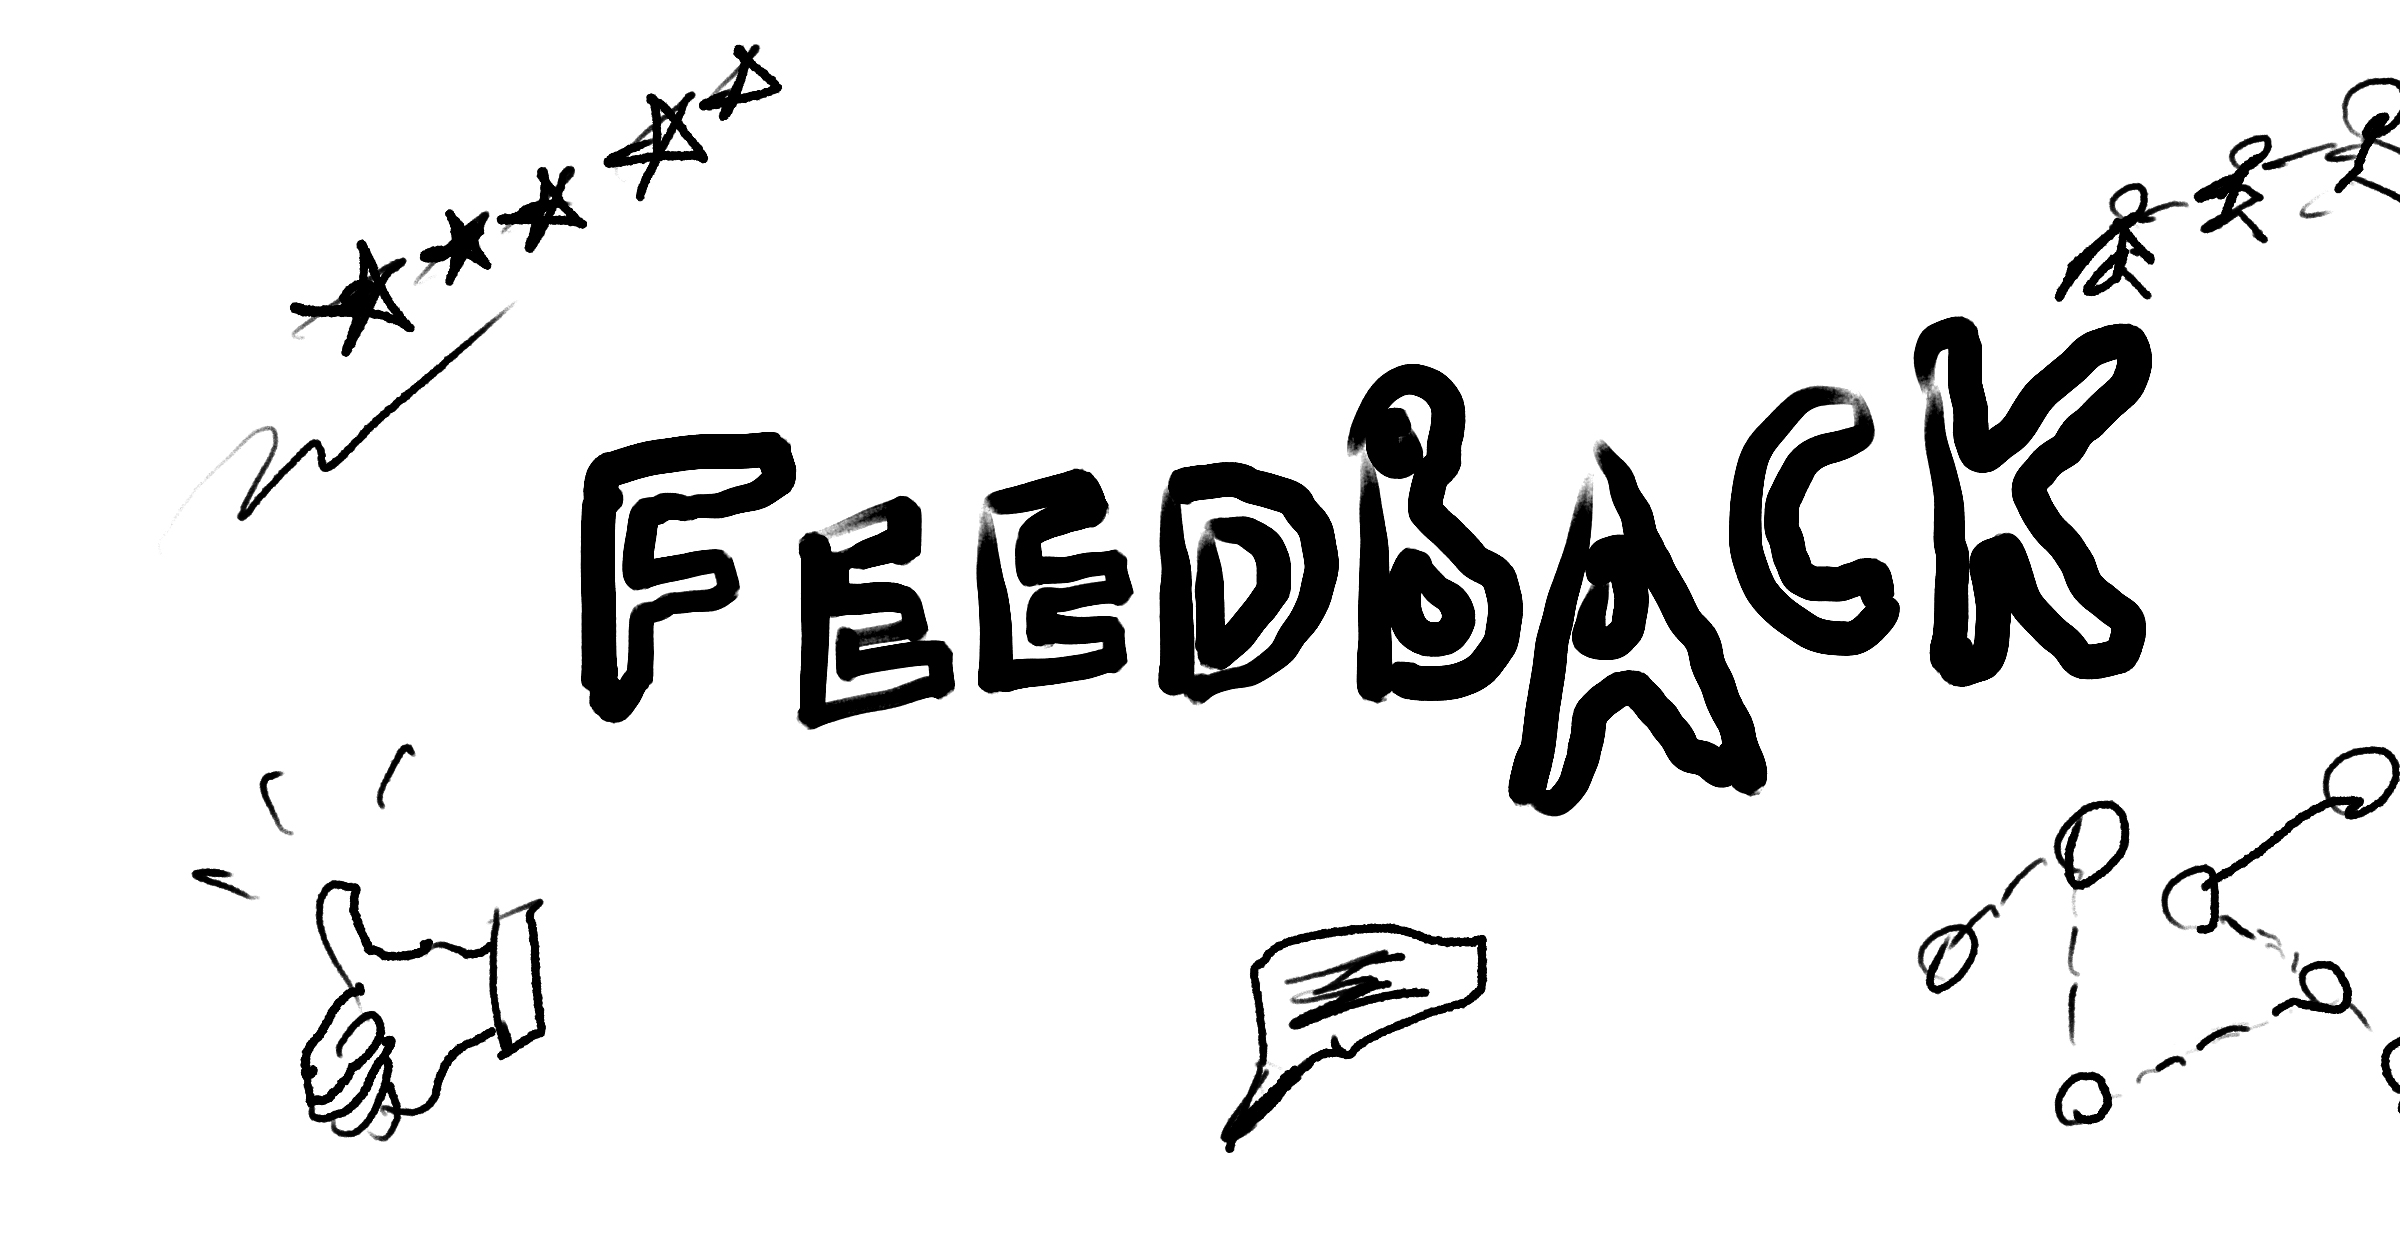 The meaning of feedback